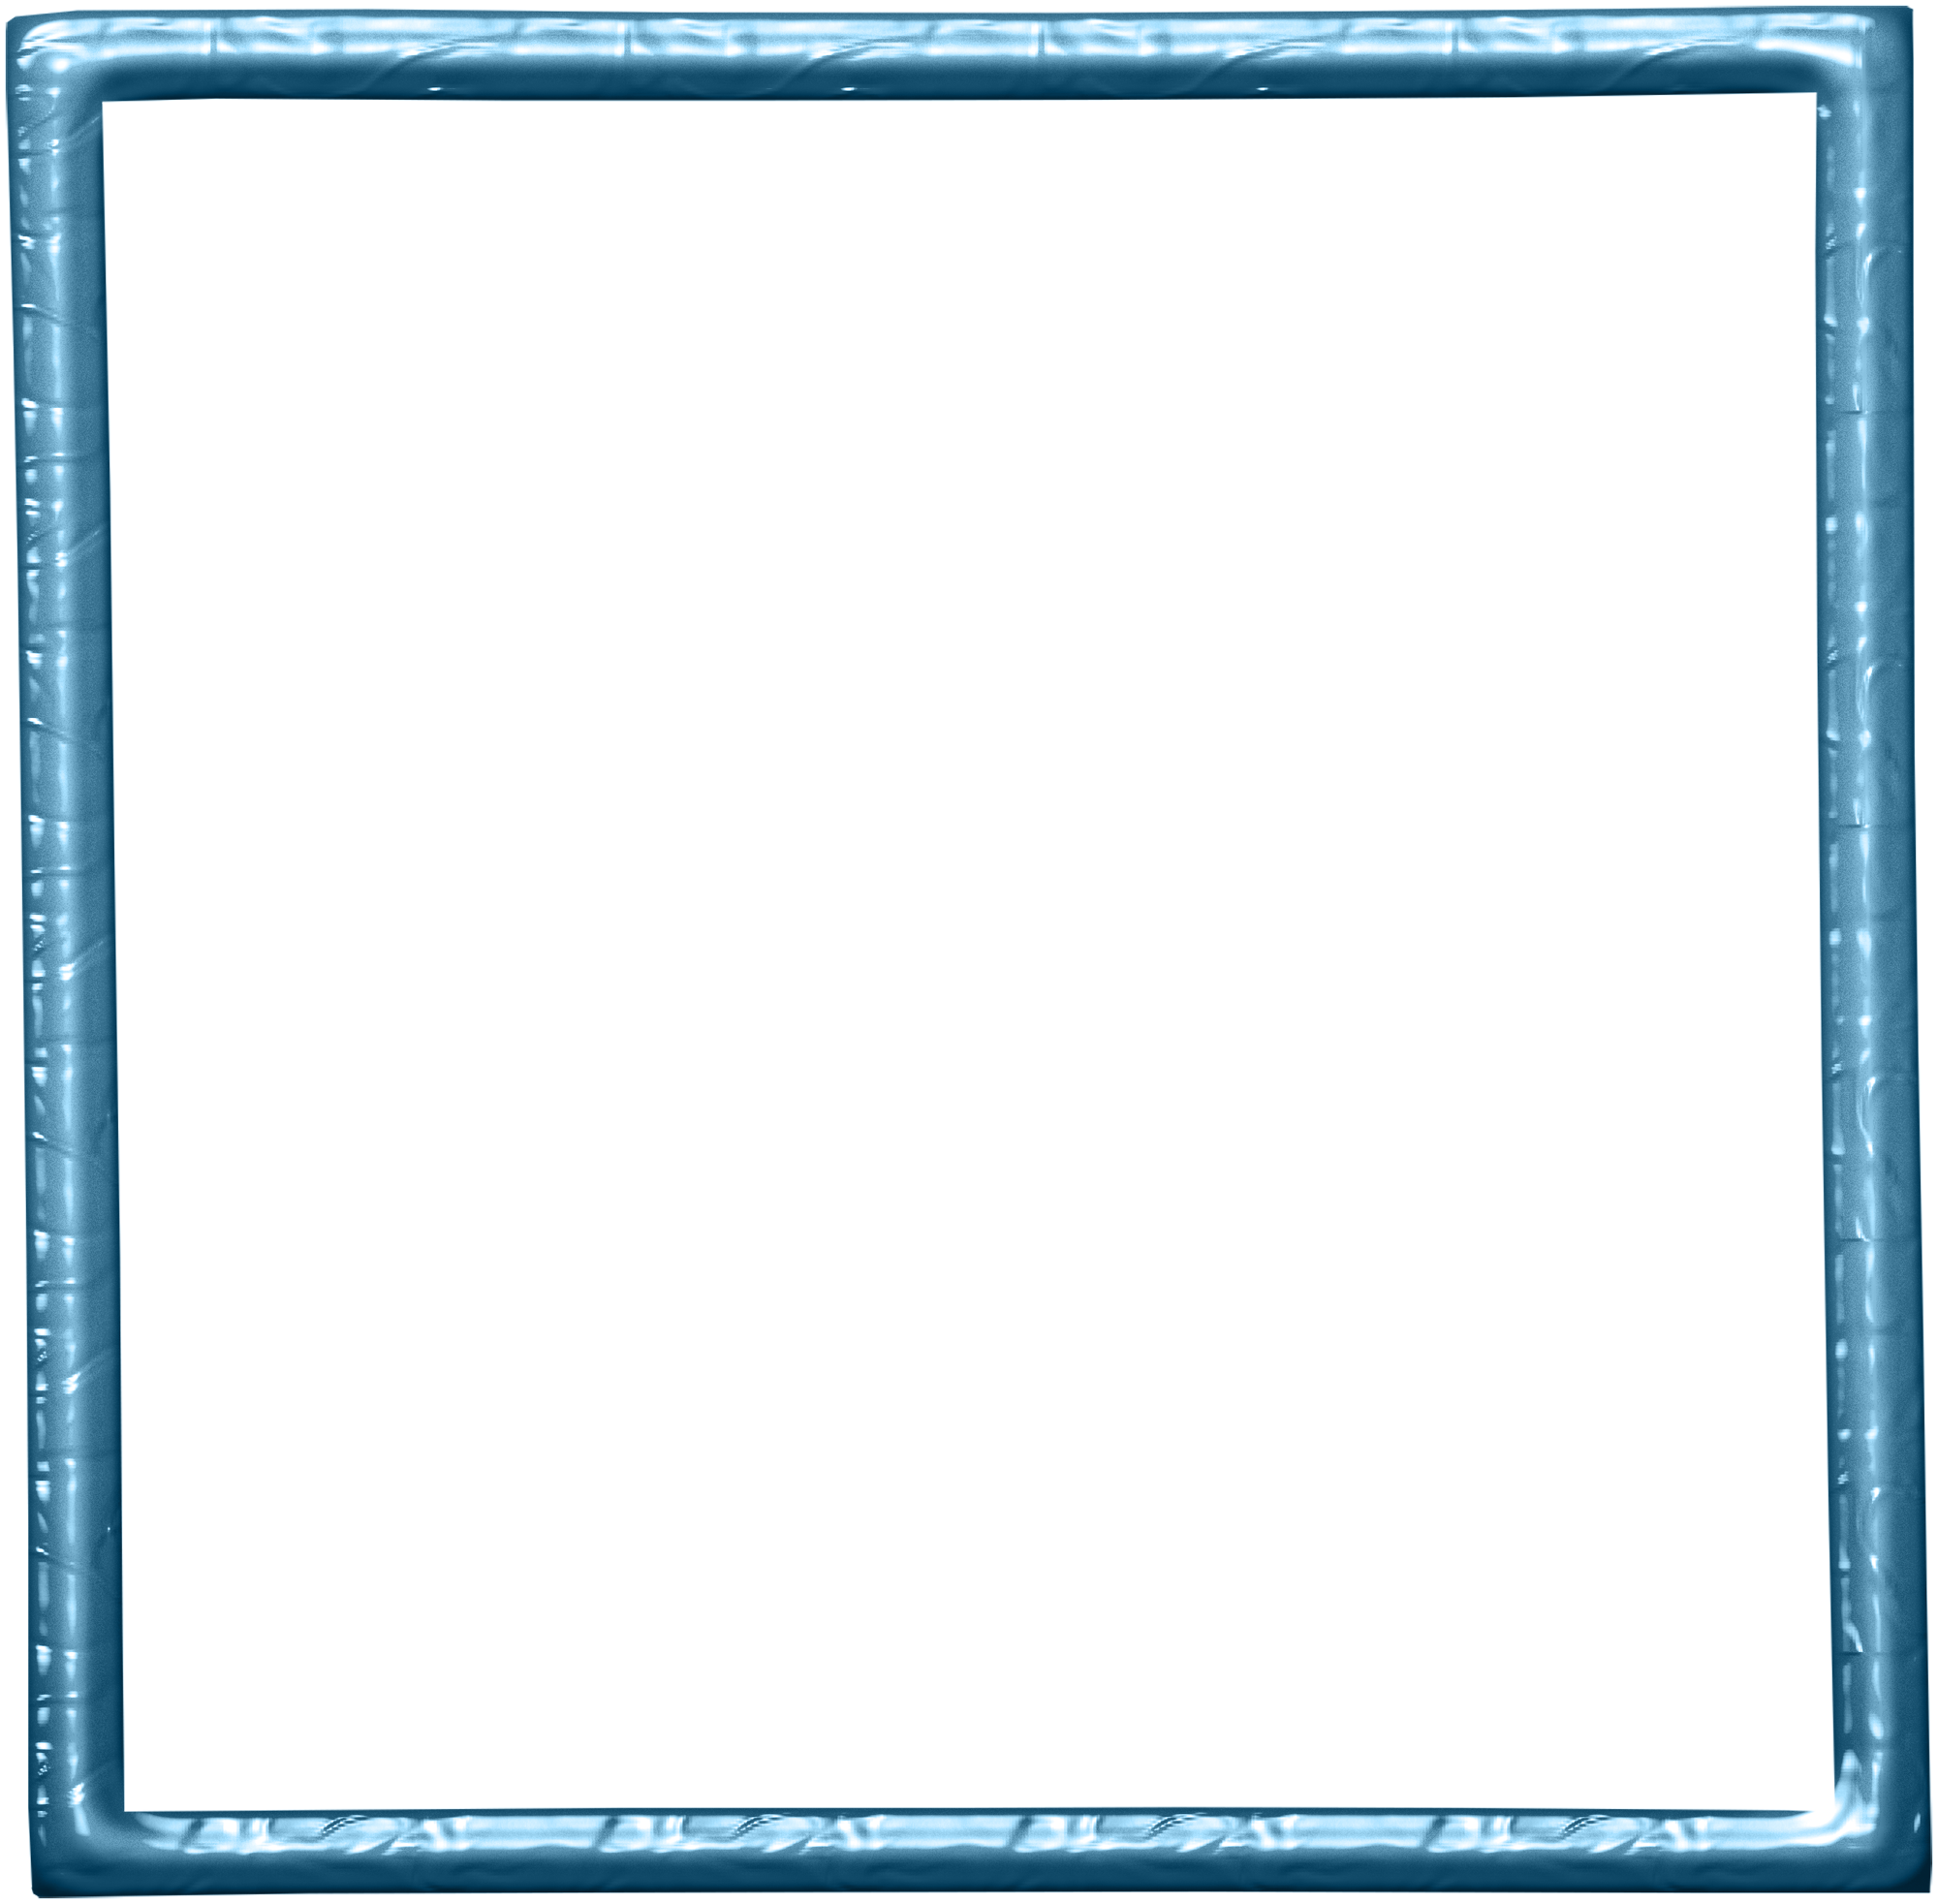 White square frame png. Blue pull away transprent